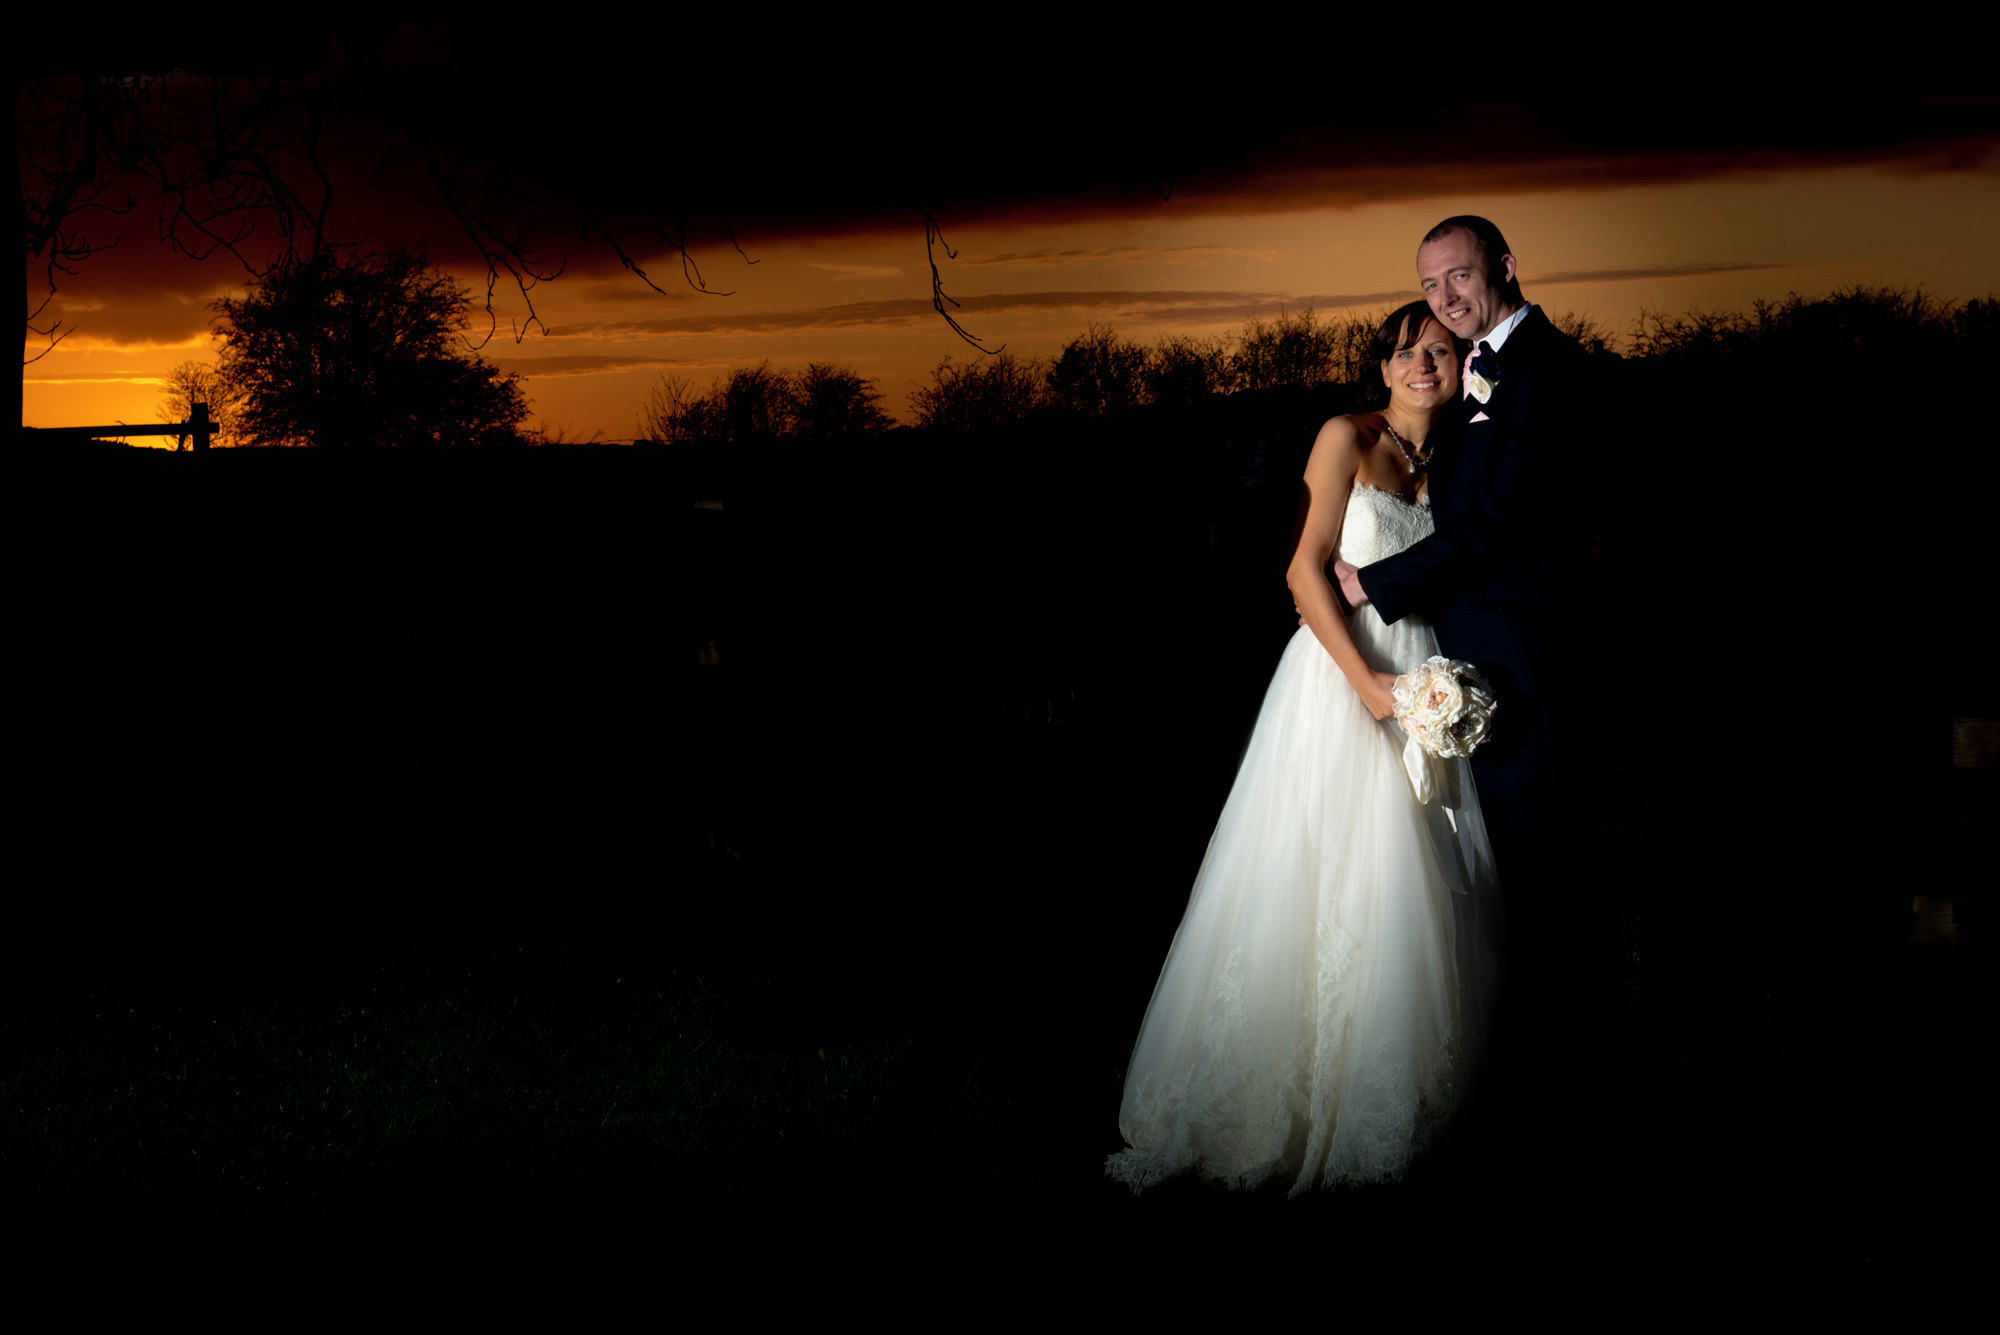 Mr & Mrs Booker 1172.jpg